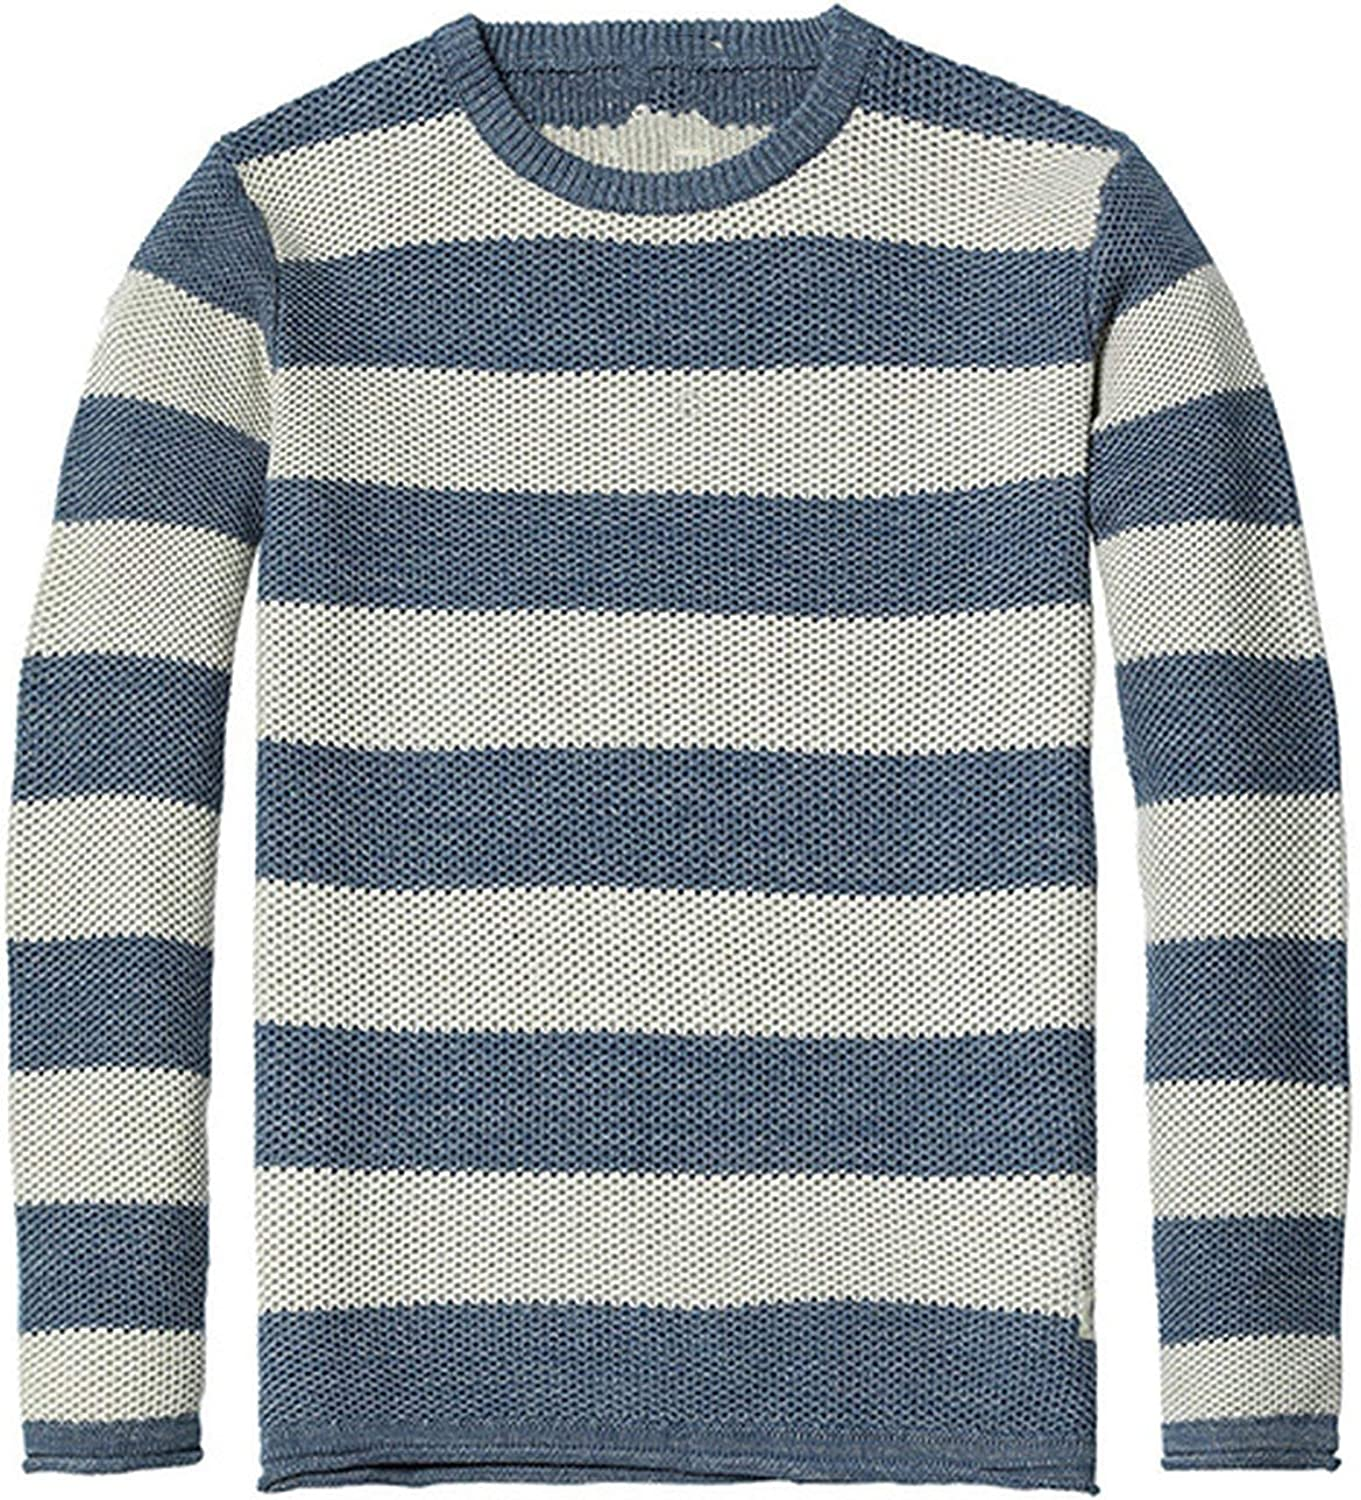 Little SU Spring Striped Sweater Men Contrast Color 100/% Cotton O Neck Knitted Pullovers